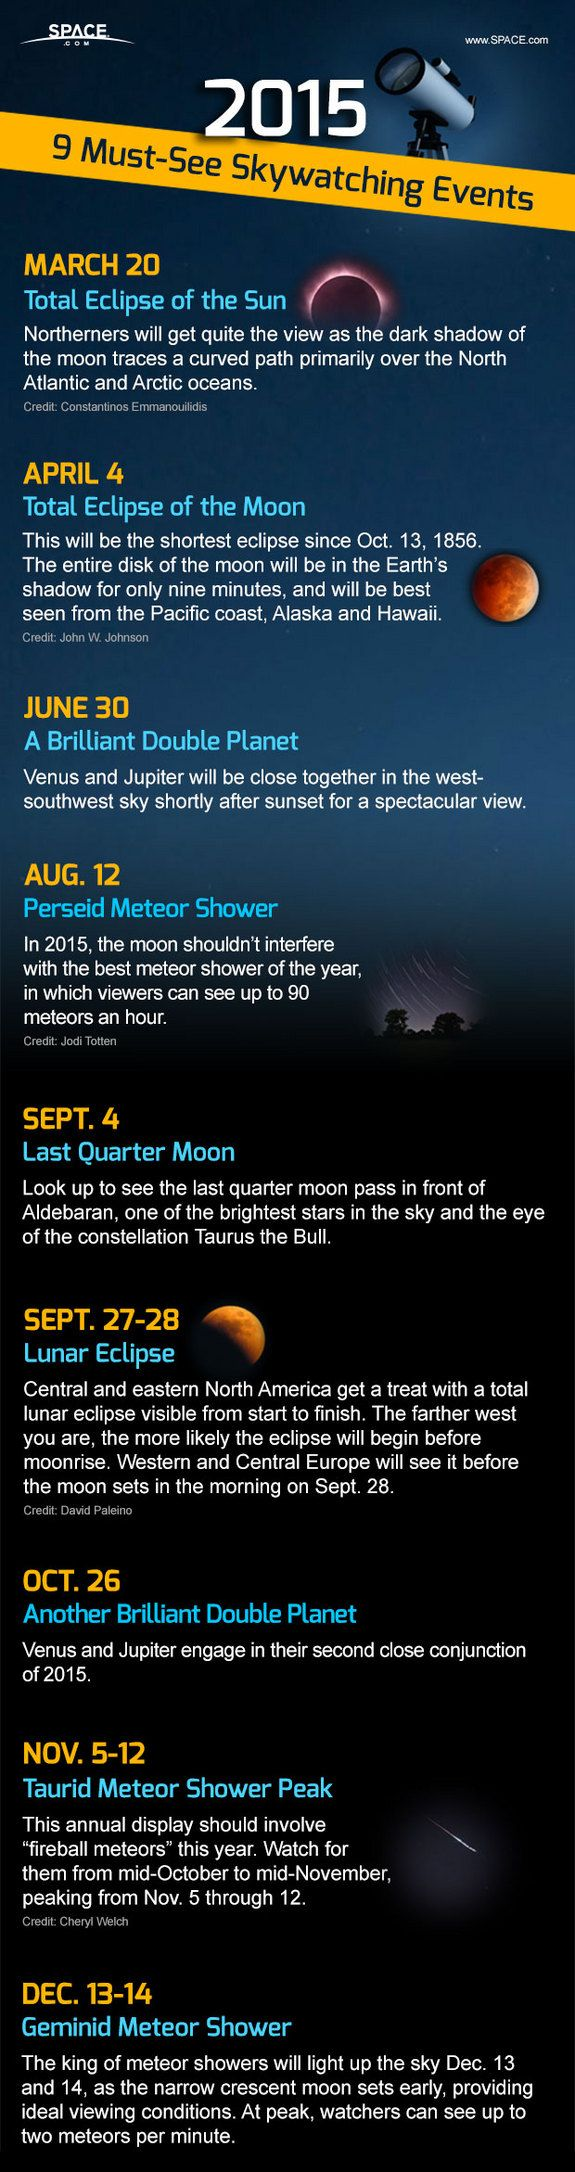 Meteor showers and eclipses of the sun and moon are just some of the amazing stargazing events of 2015.